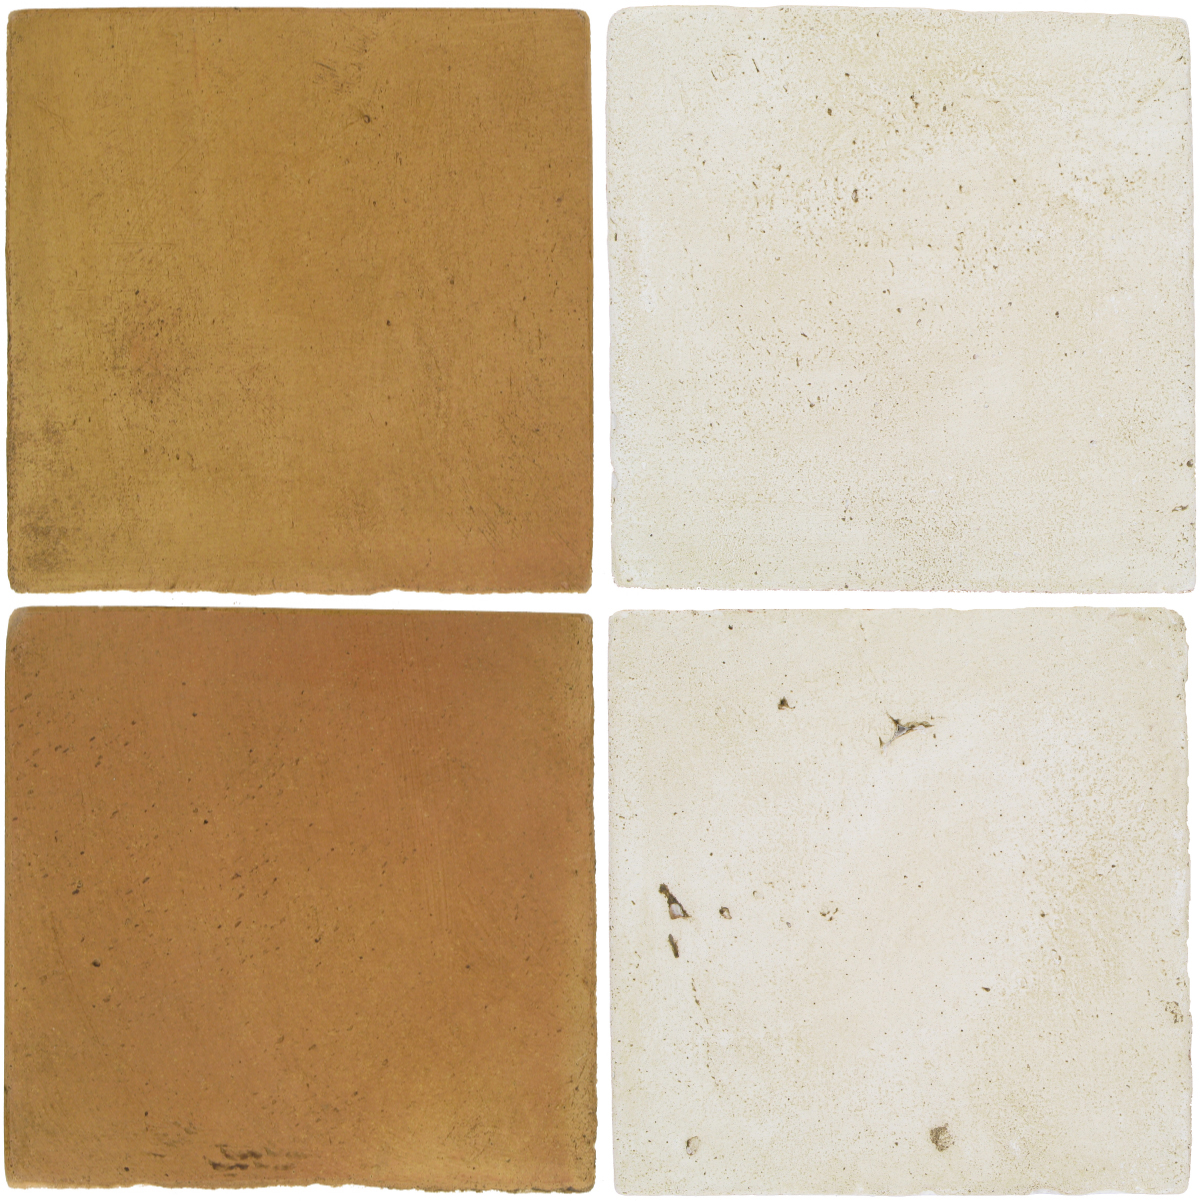 Pedralbes Antique Terracotta  2 Color Combinations  OHS-PSSW Siena Wheat + VTG-PGAW Antique White